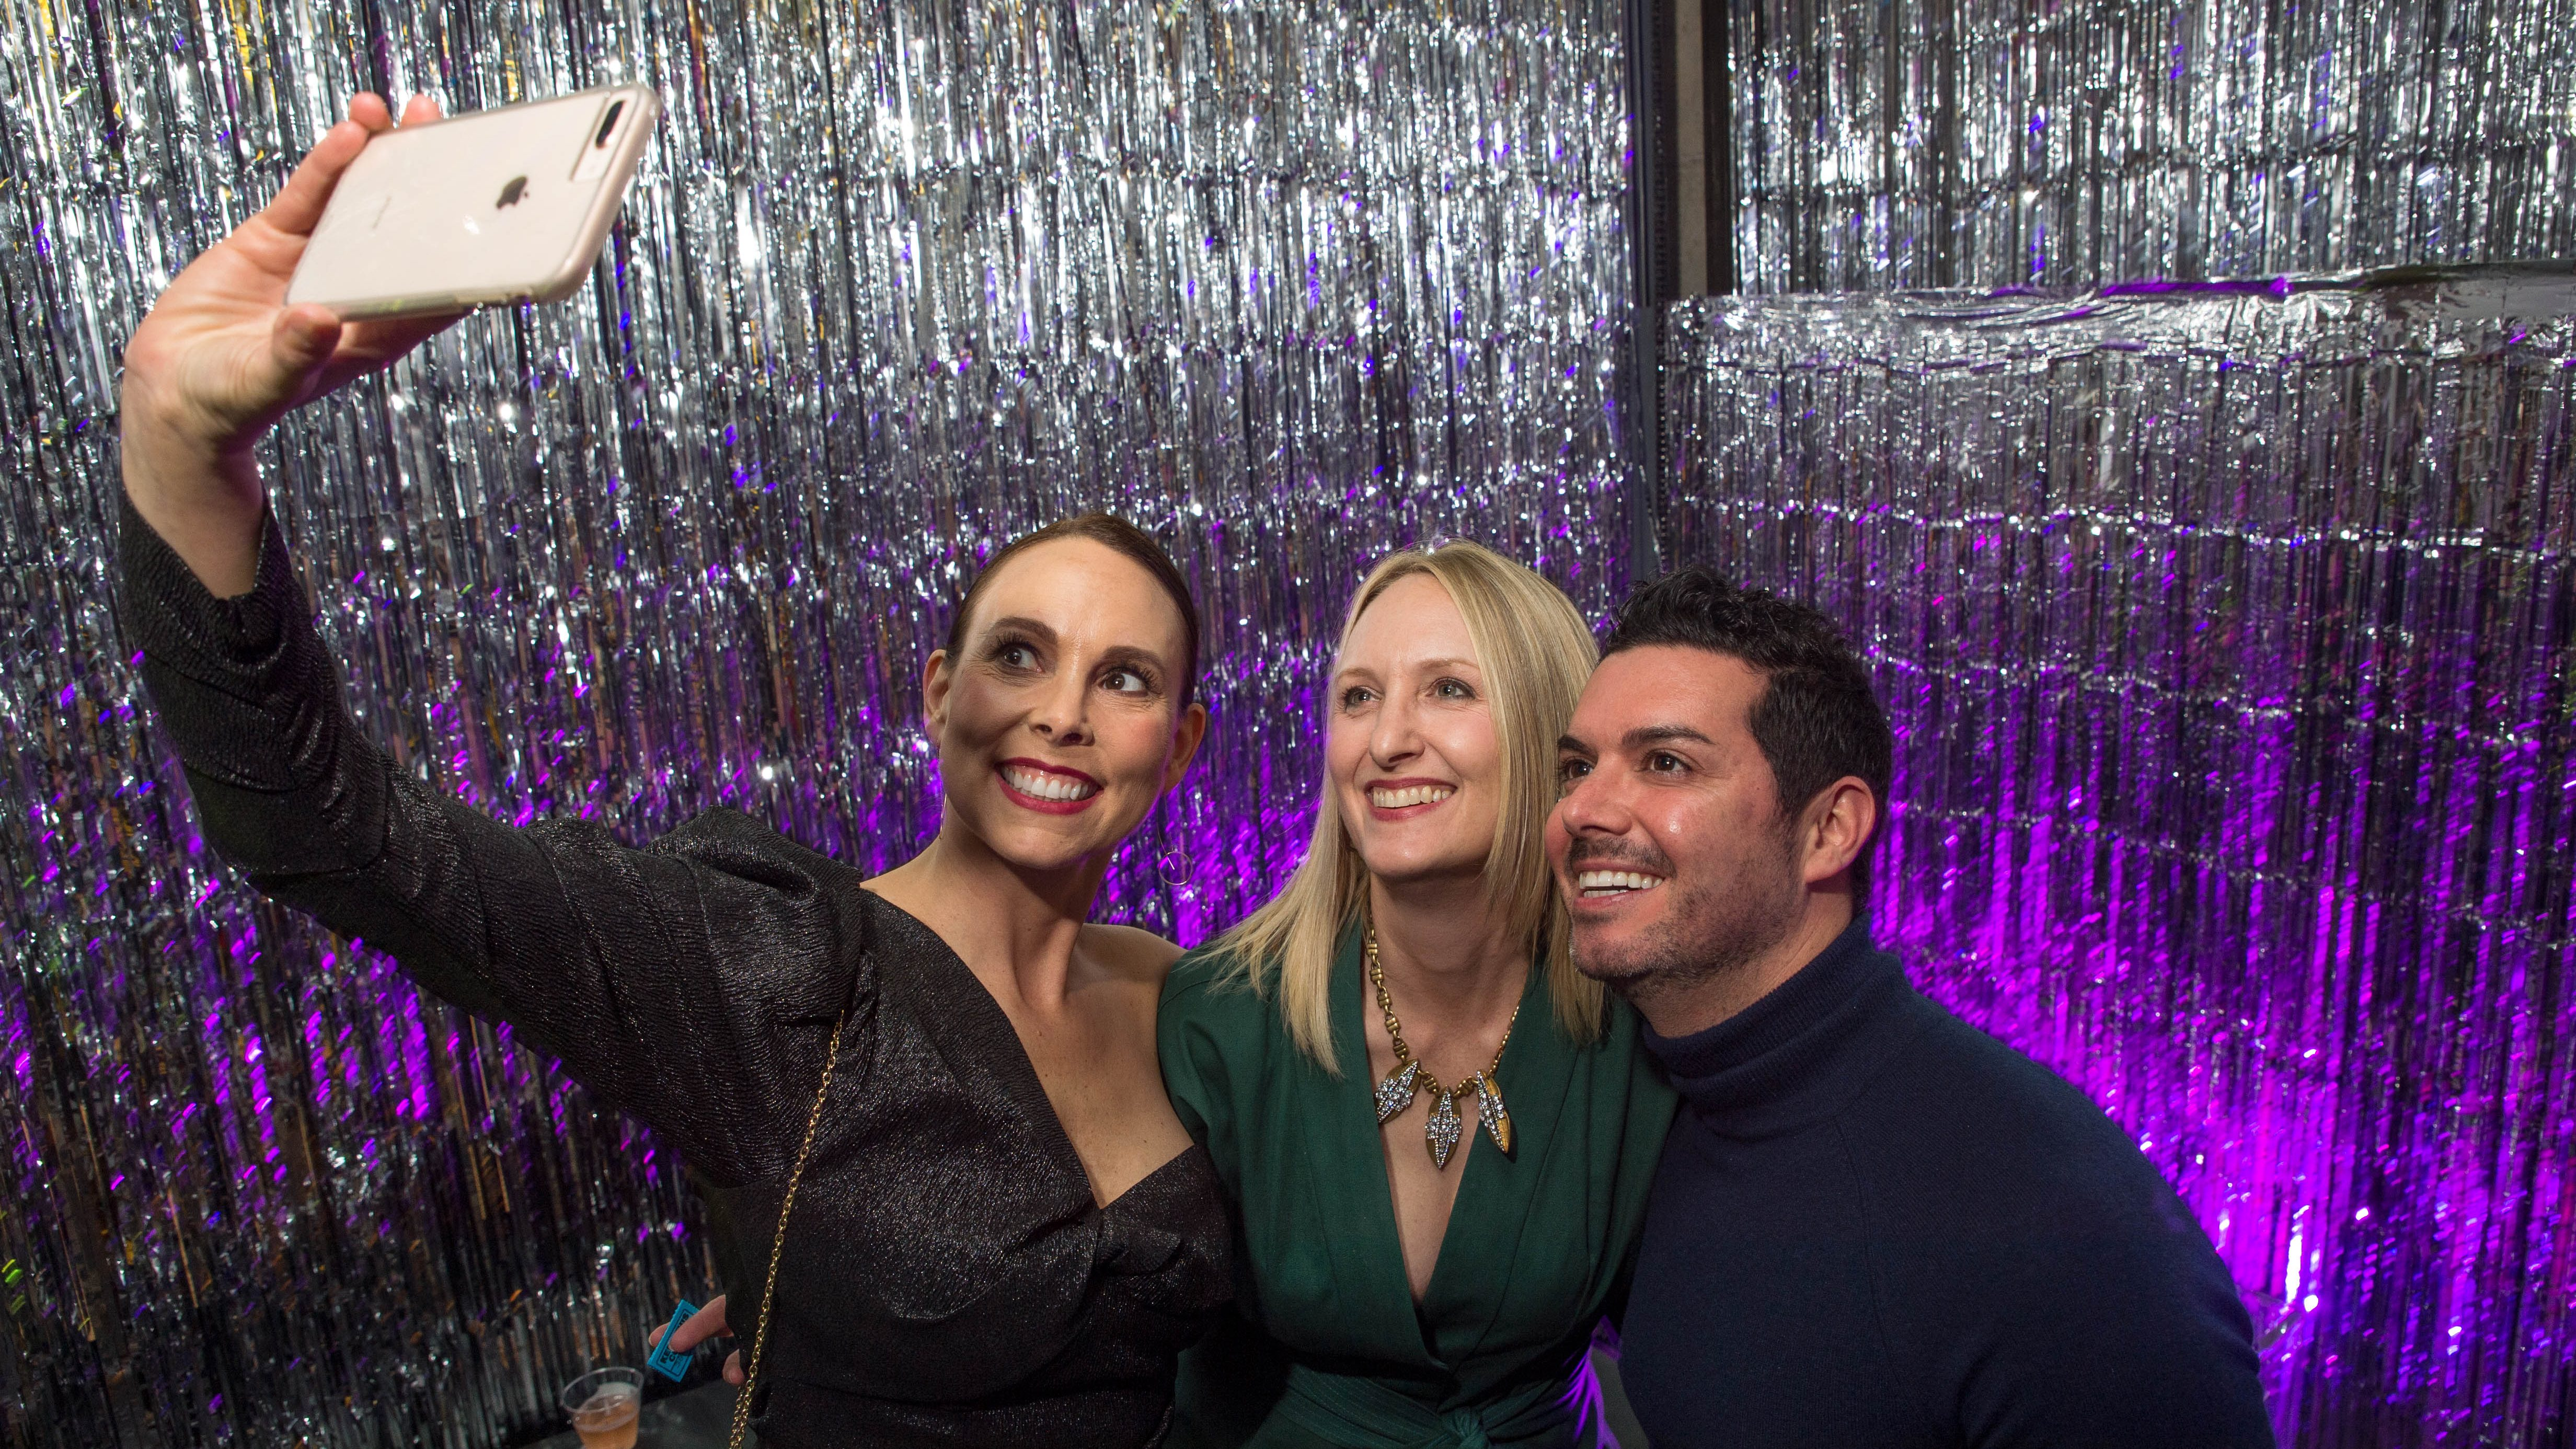 Two women and a man take a selfie against a shimmery silver background with purple lighting.